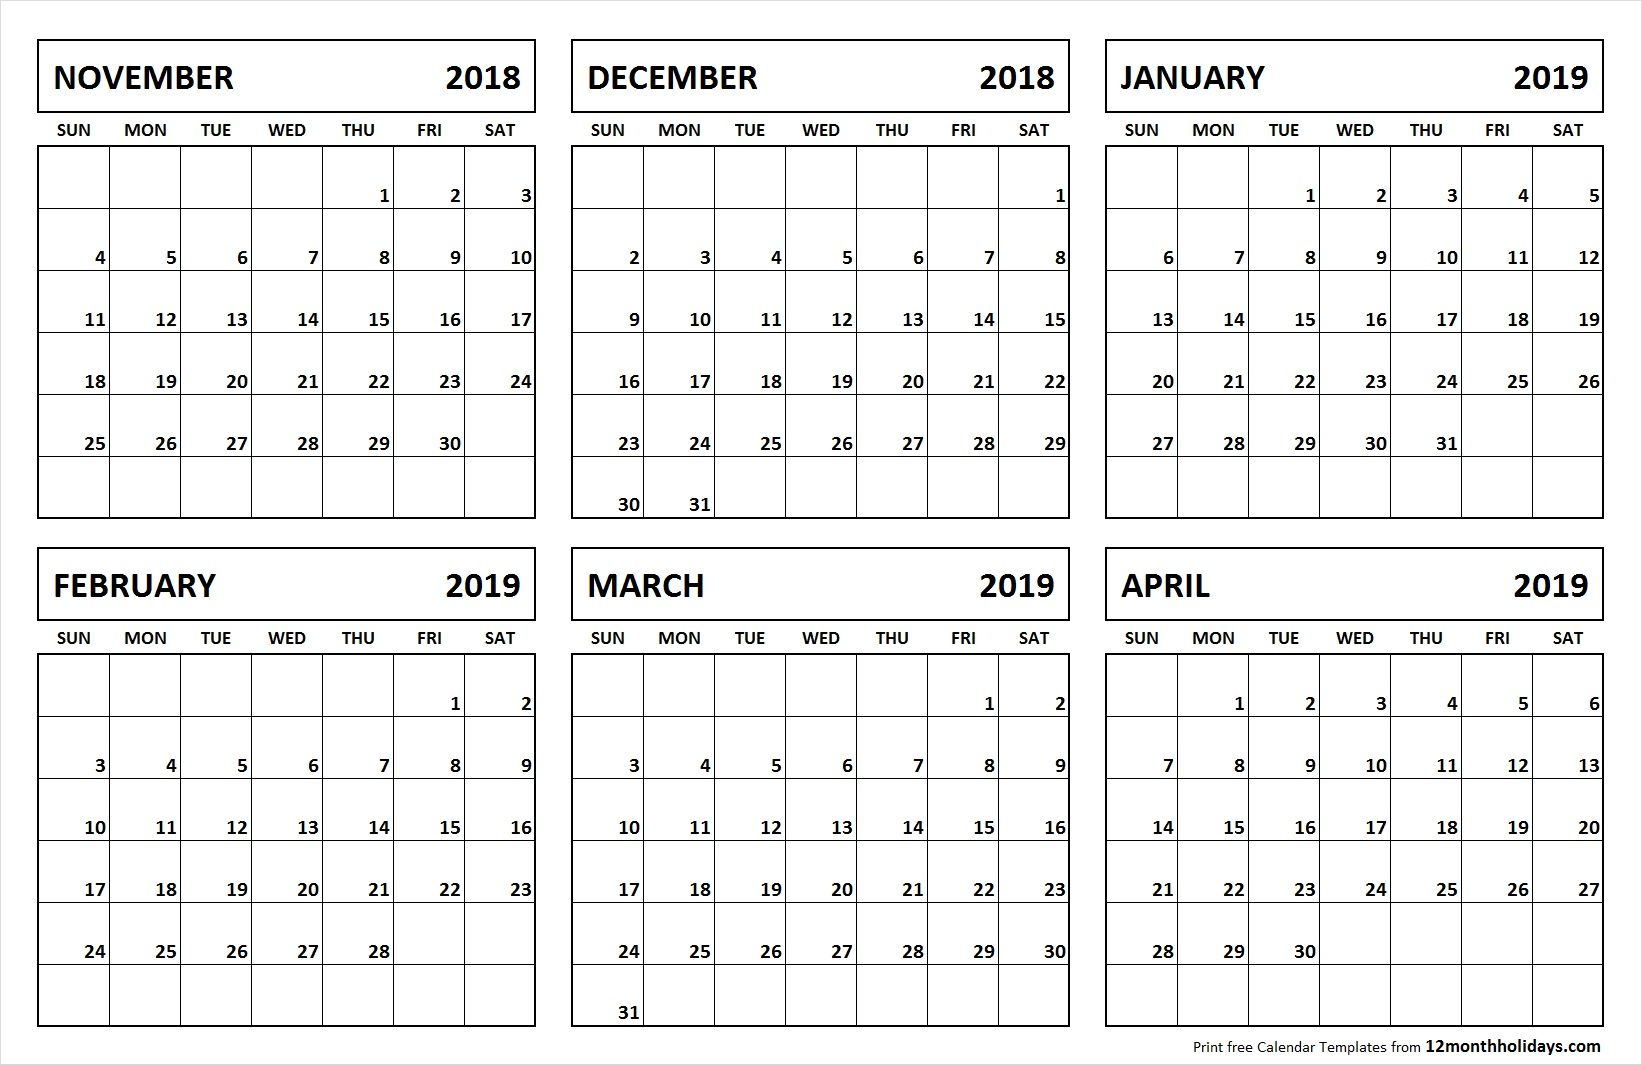 6 Month Calendar November 2018 April 2019 | Monthly Calendar for Blank 6 Month Calendar